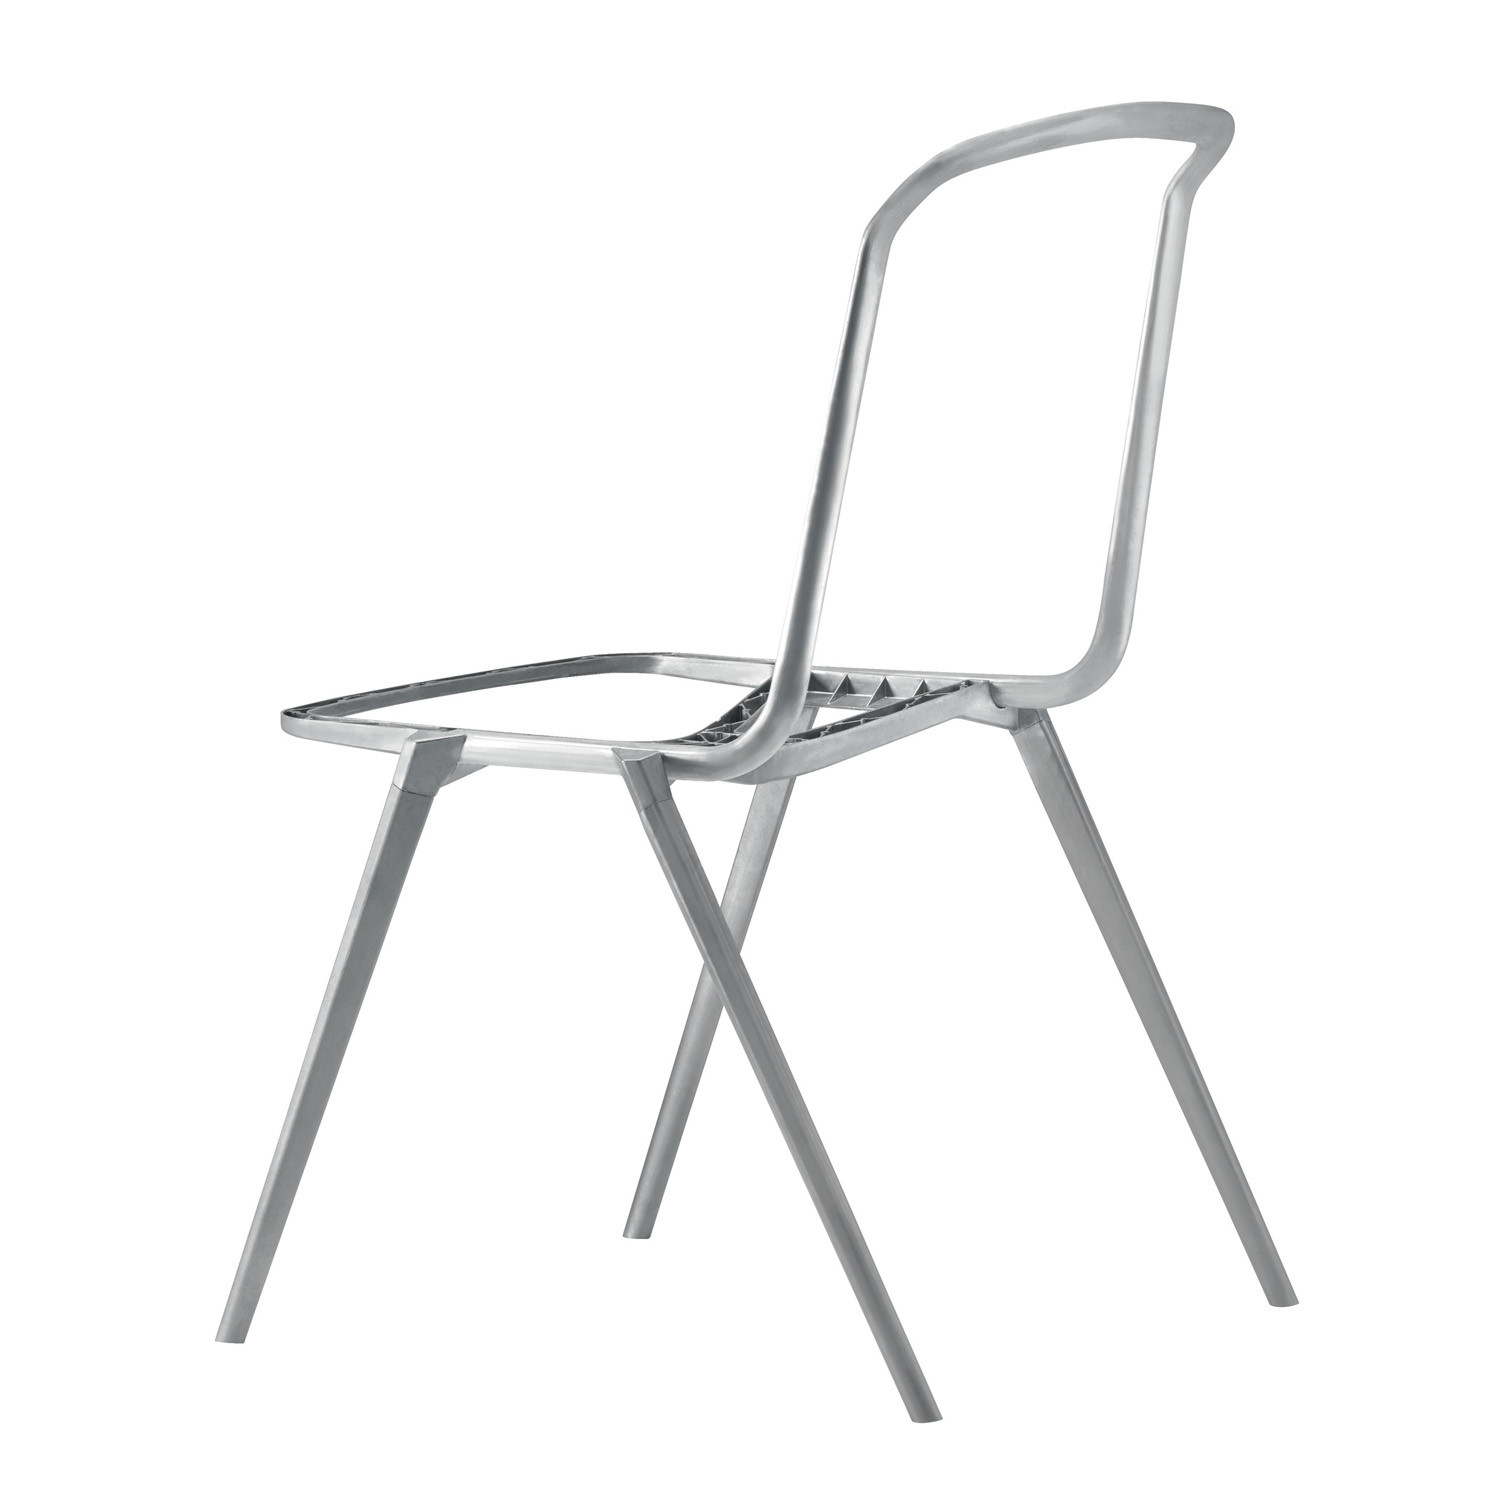 Hydrochair structure in die-cast aluminium